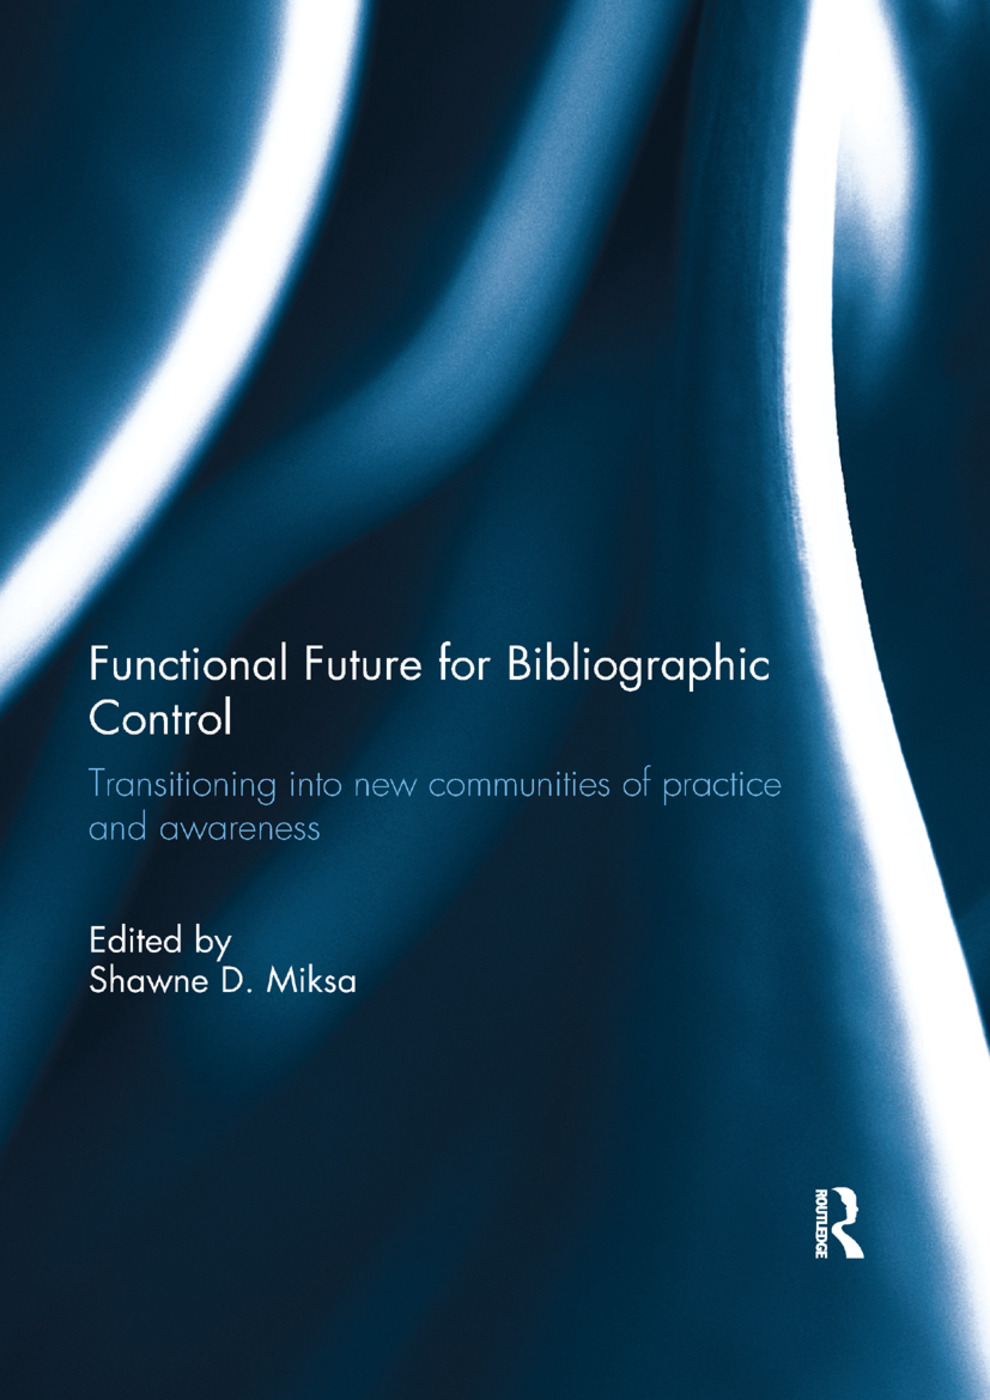 Functional Future for Bibliographic Control: Transitioning into new communities of practice and awareness book cover